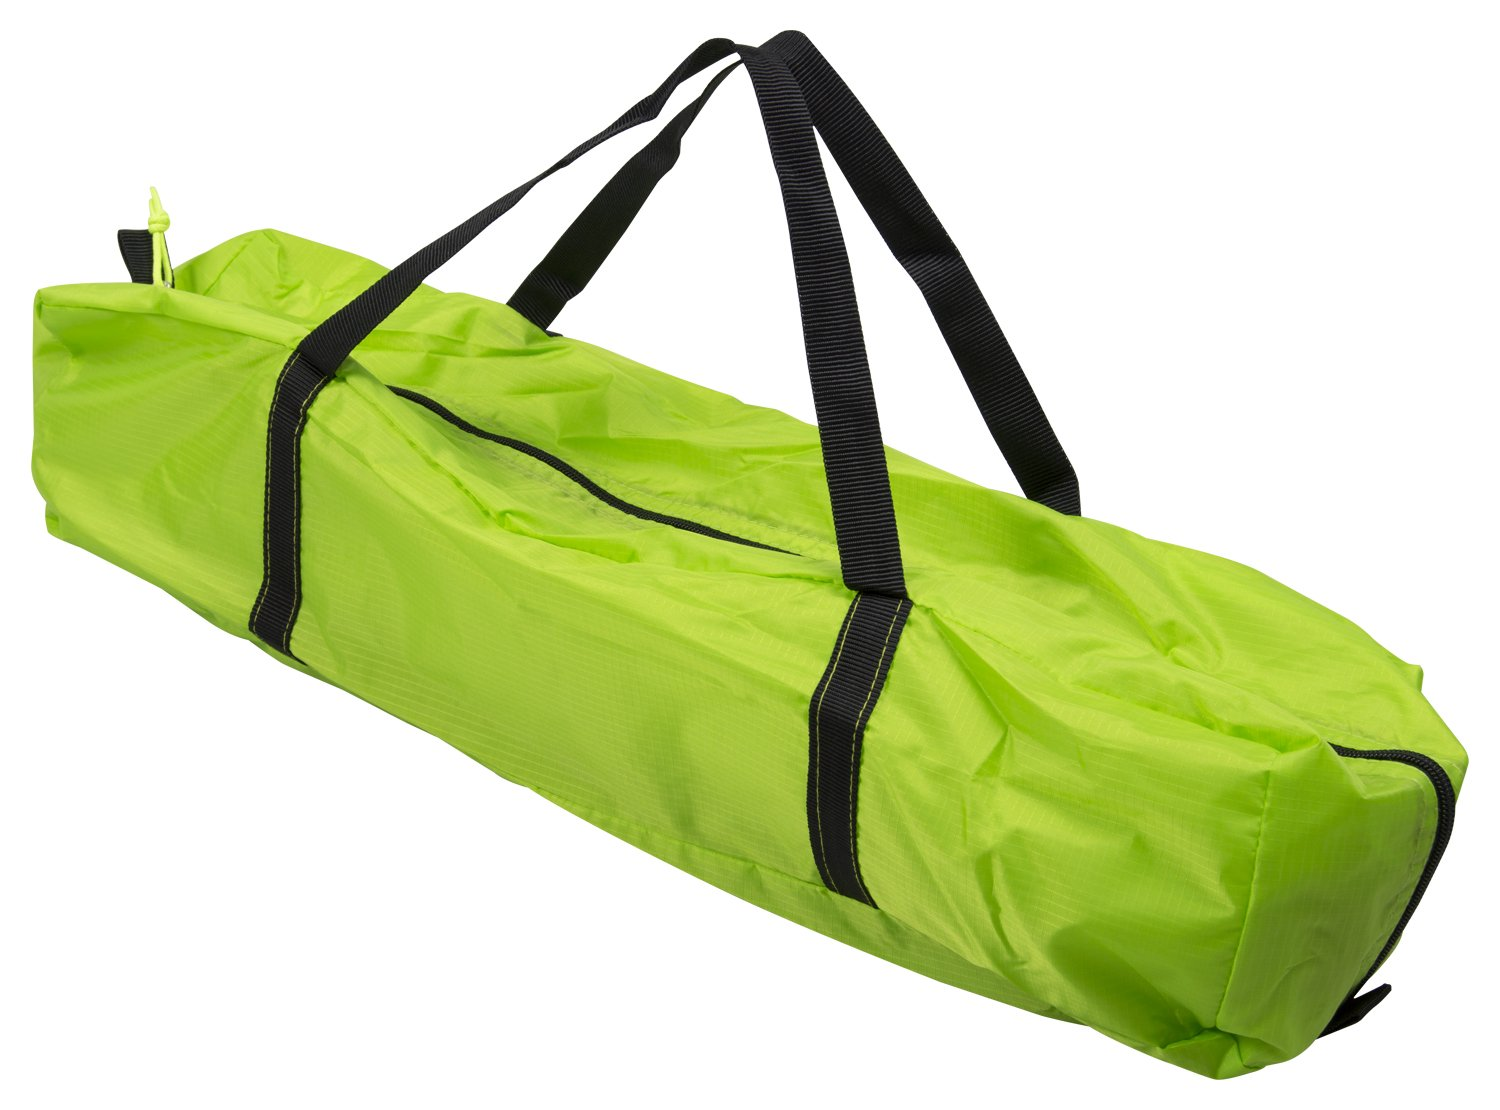 Andes Deluxe Portable Toilet/Shower Utility Tent Camping Changing Room Storage 5